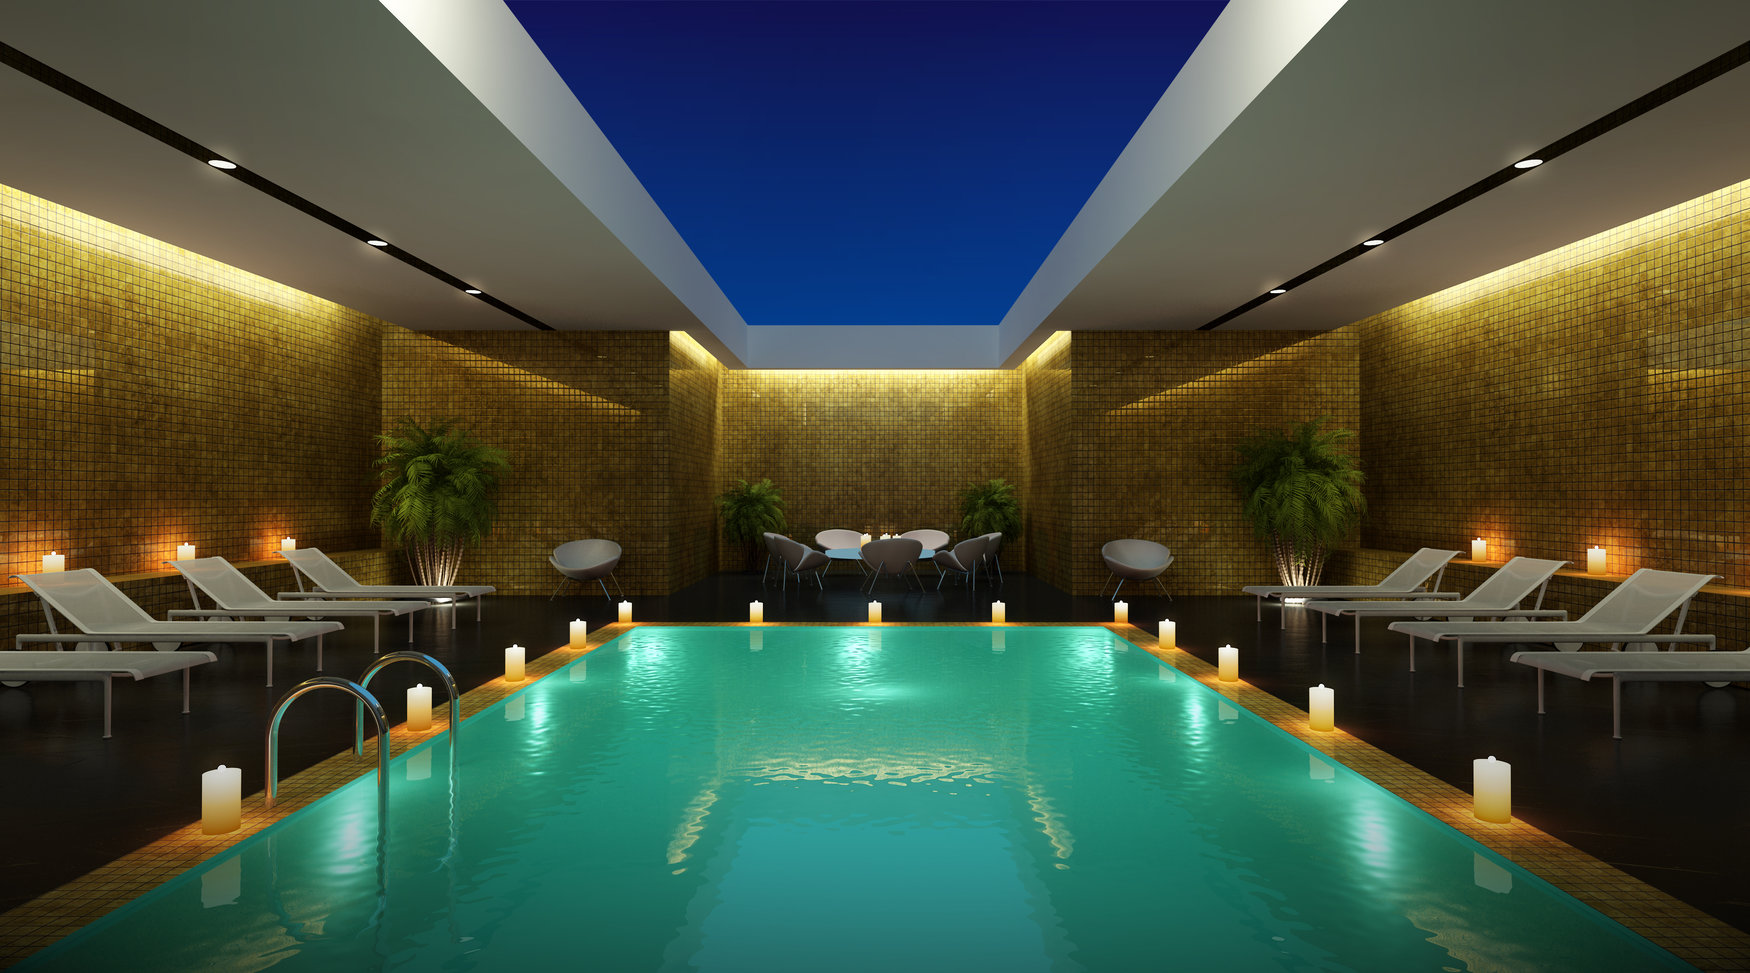 pool lighting design. Pool Lighting Beautiful Design